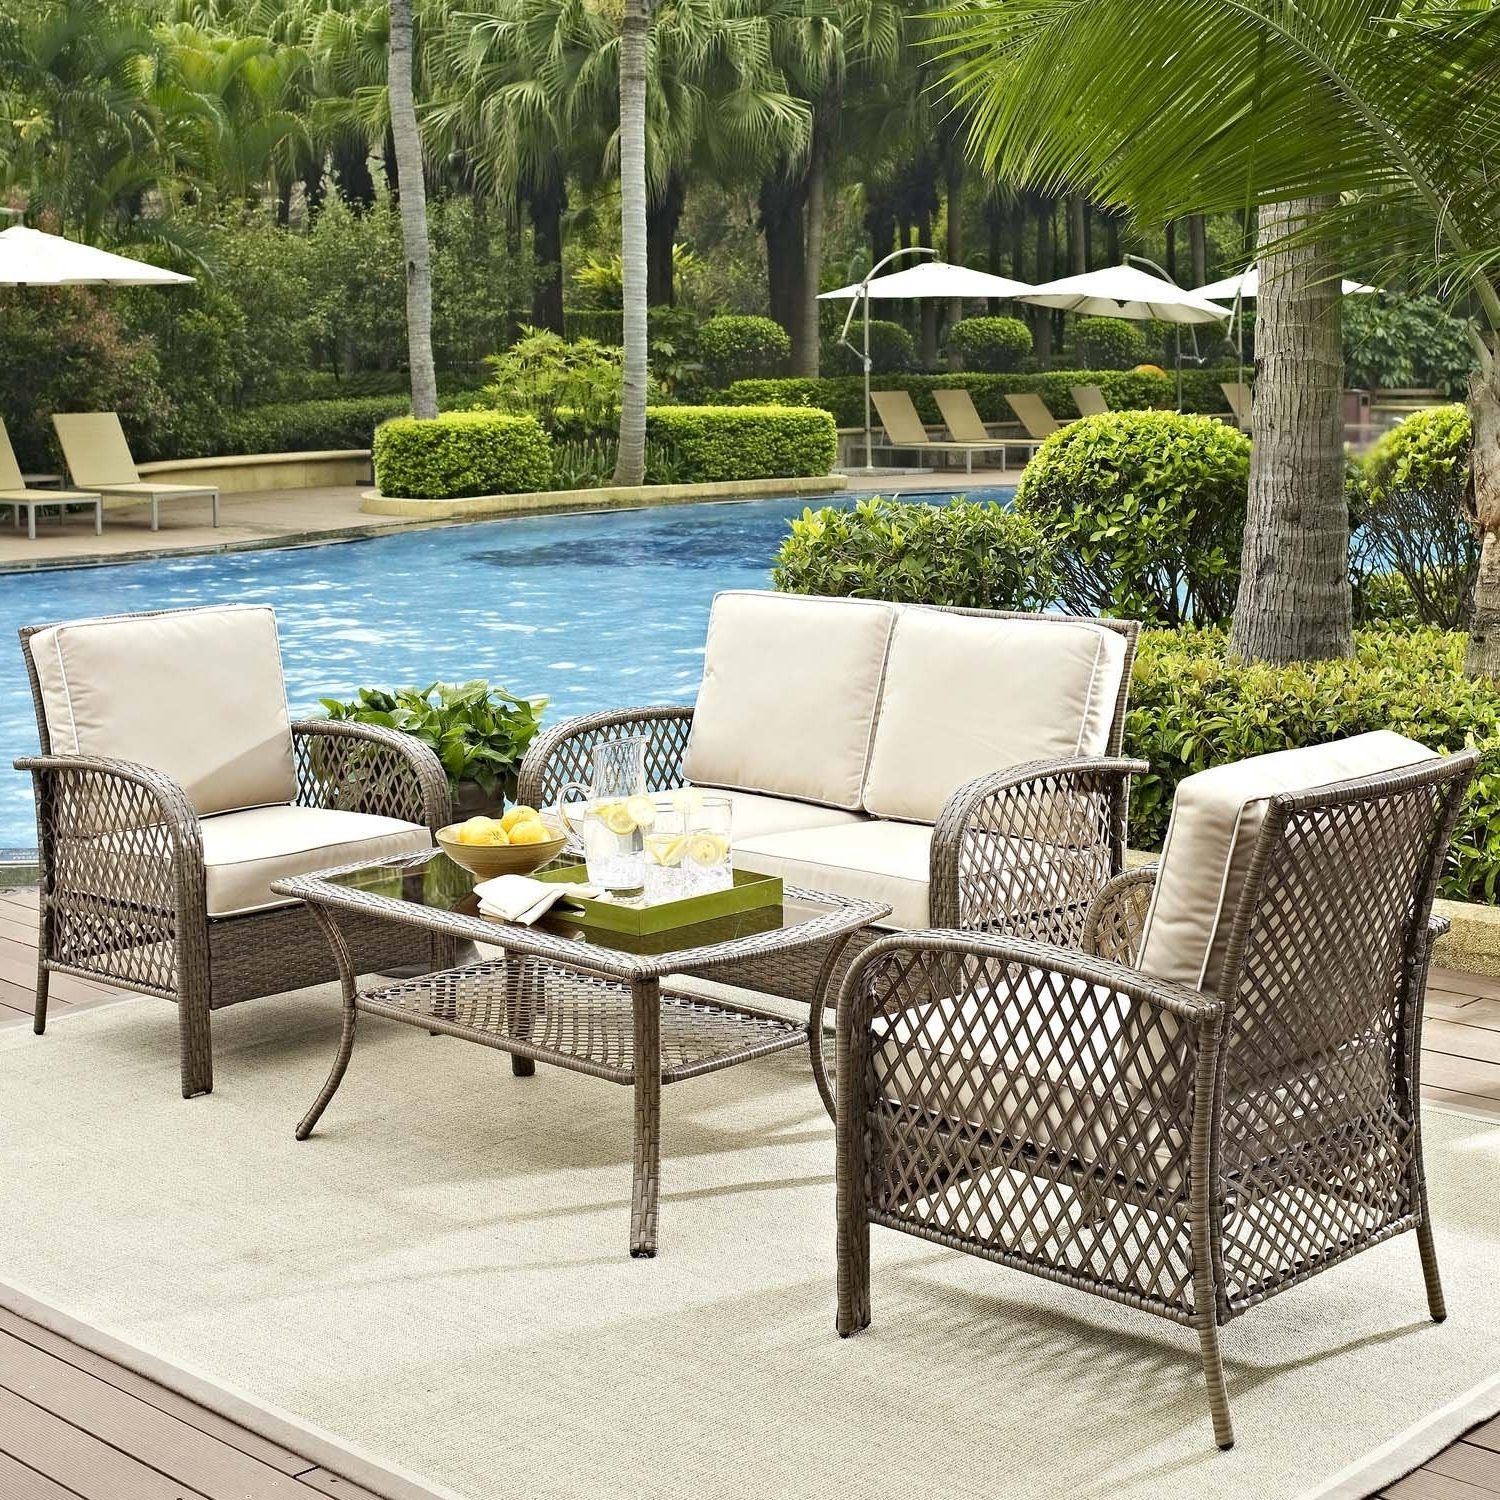 Wayfair Outdoor Patio Conversation Sets For Fashionable Breathtaking Wayfair Patio Furniture Sets Gallery Best Image From (View 2 of 20)